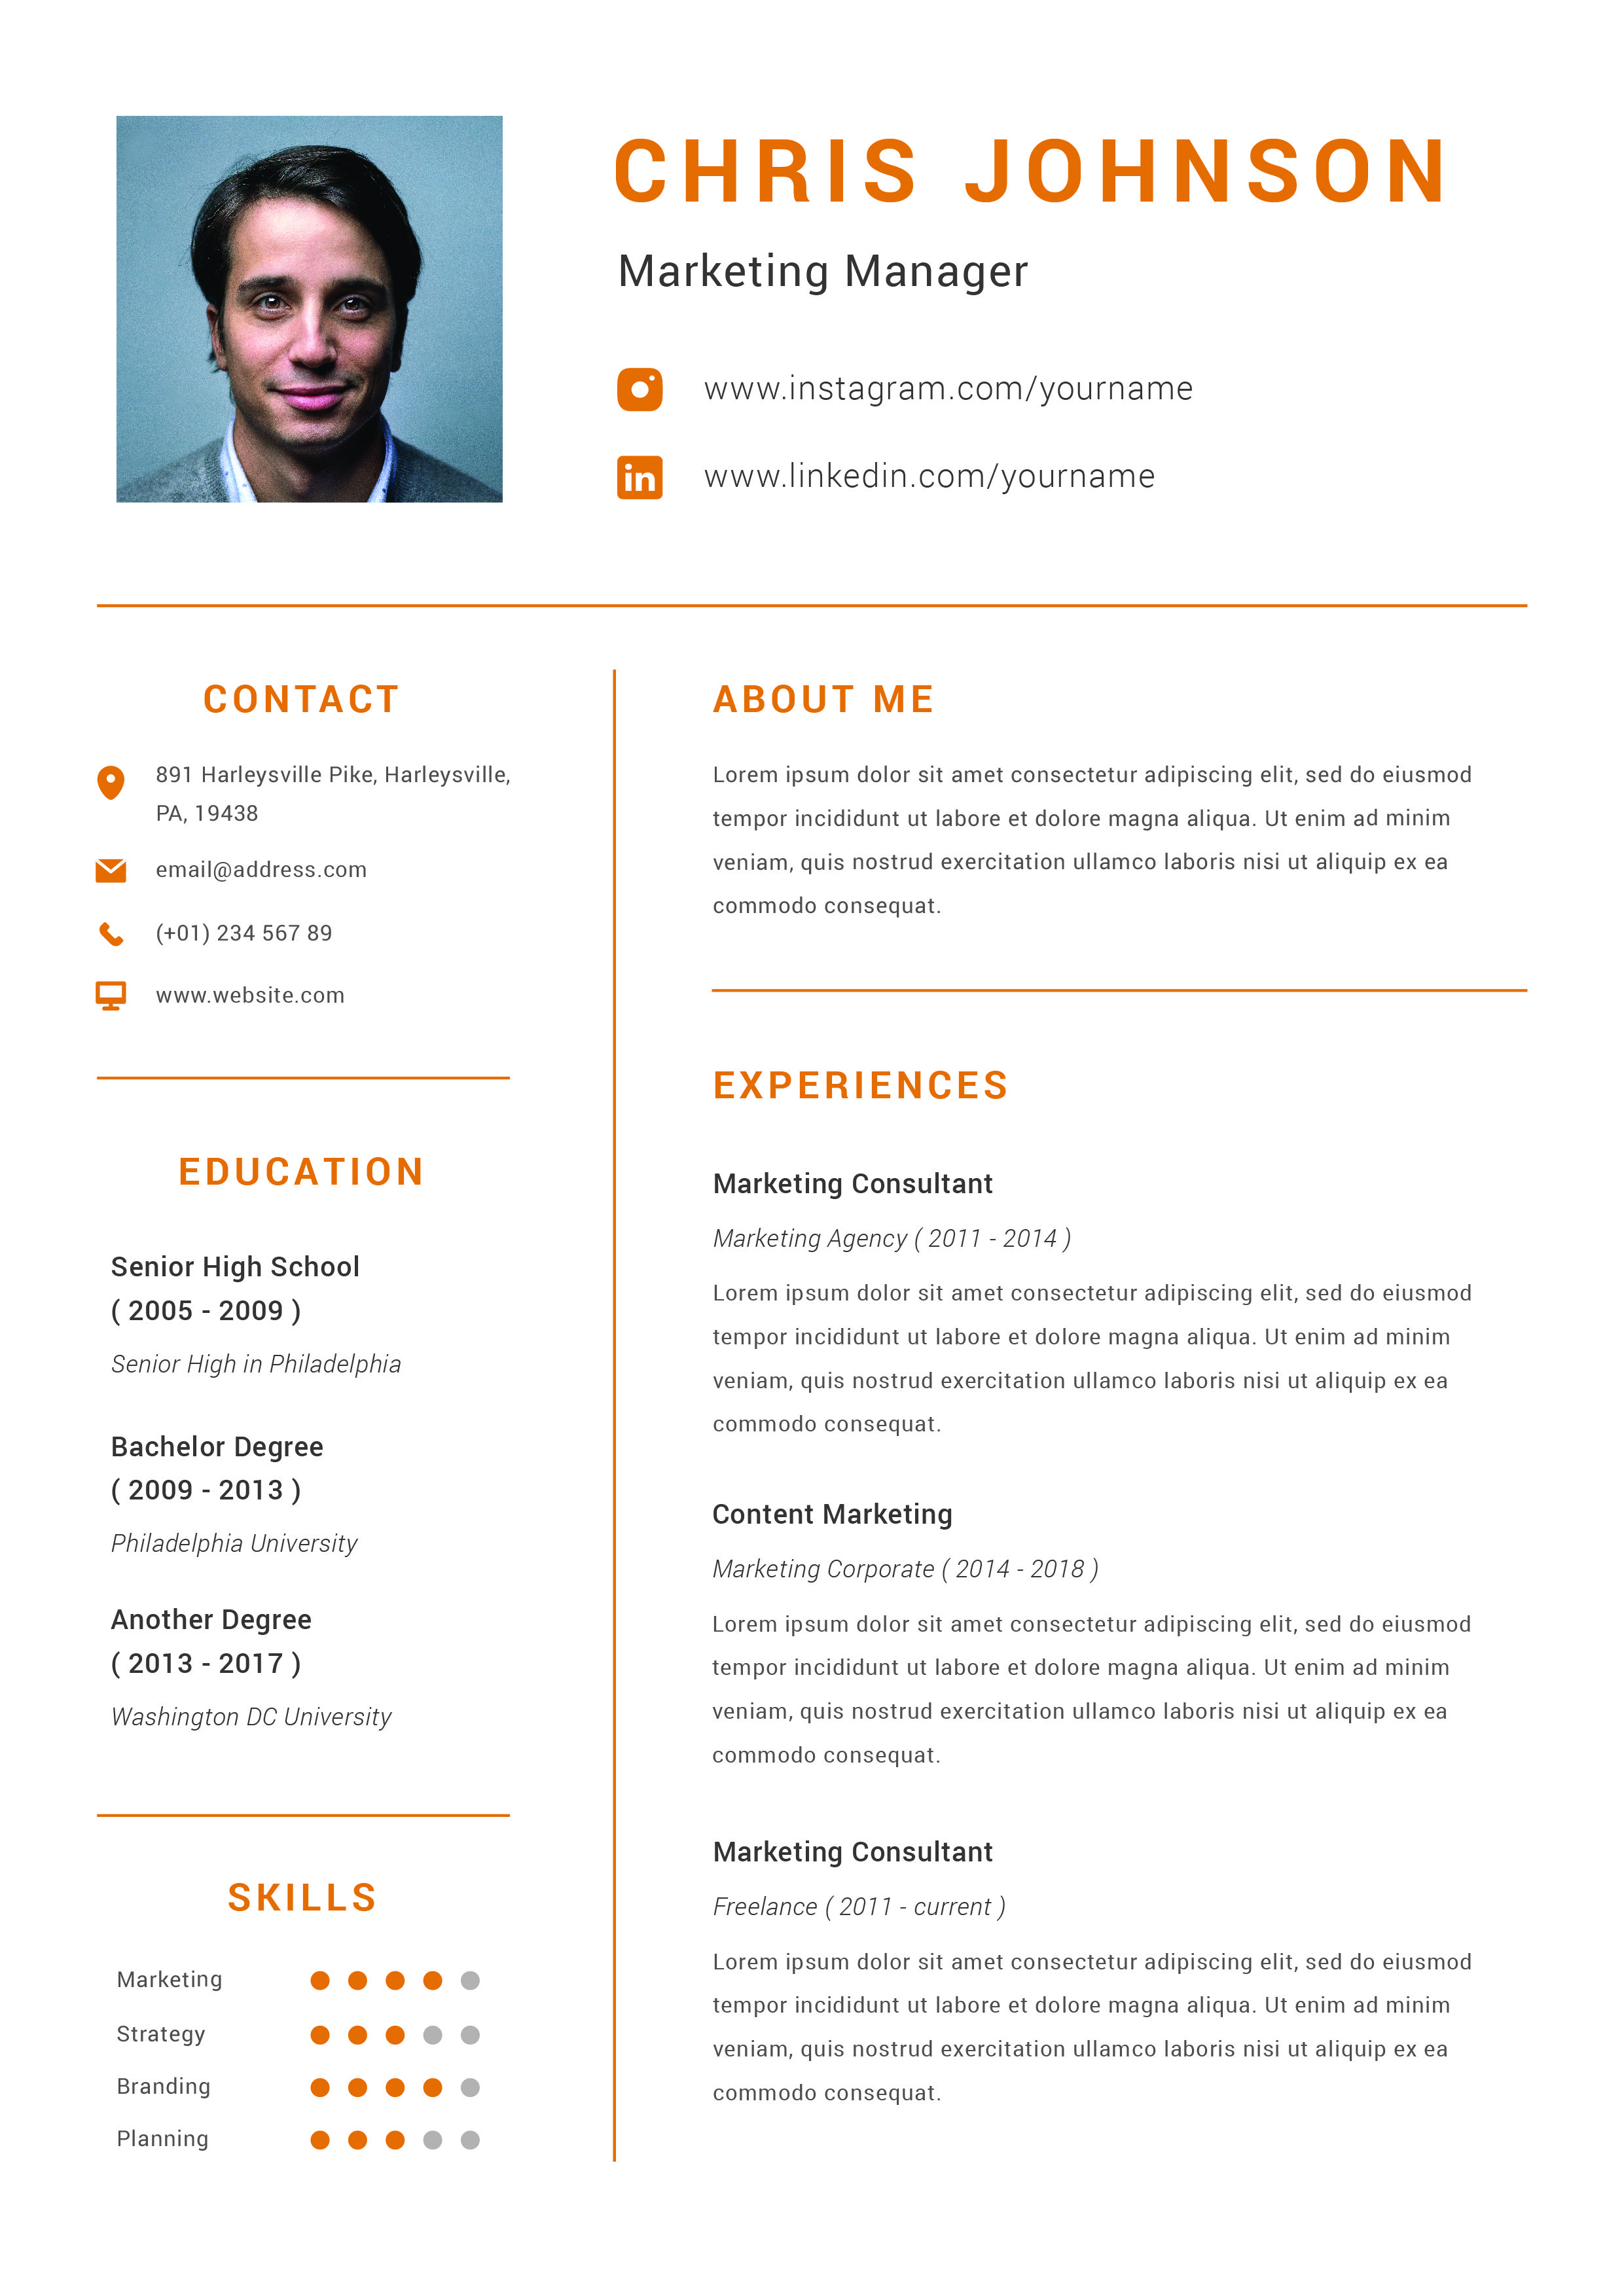 Cv Resume Vol 2 By Deemakdaksinas On Envato Elements Resume Cover Letter For Resume Curriculum Vitae Design